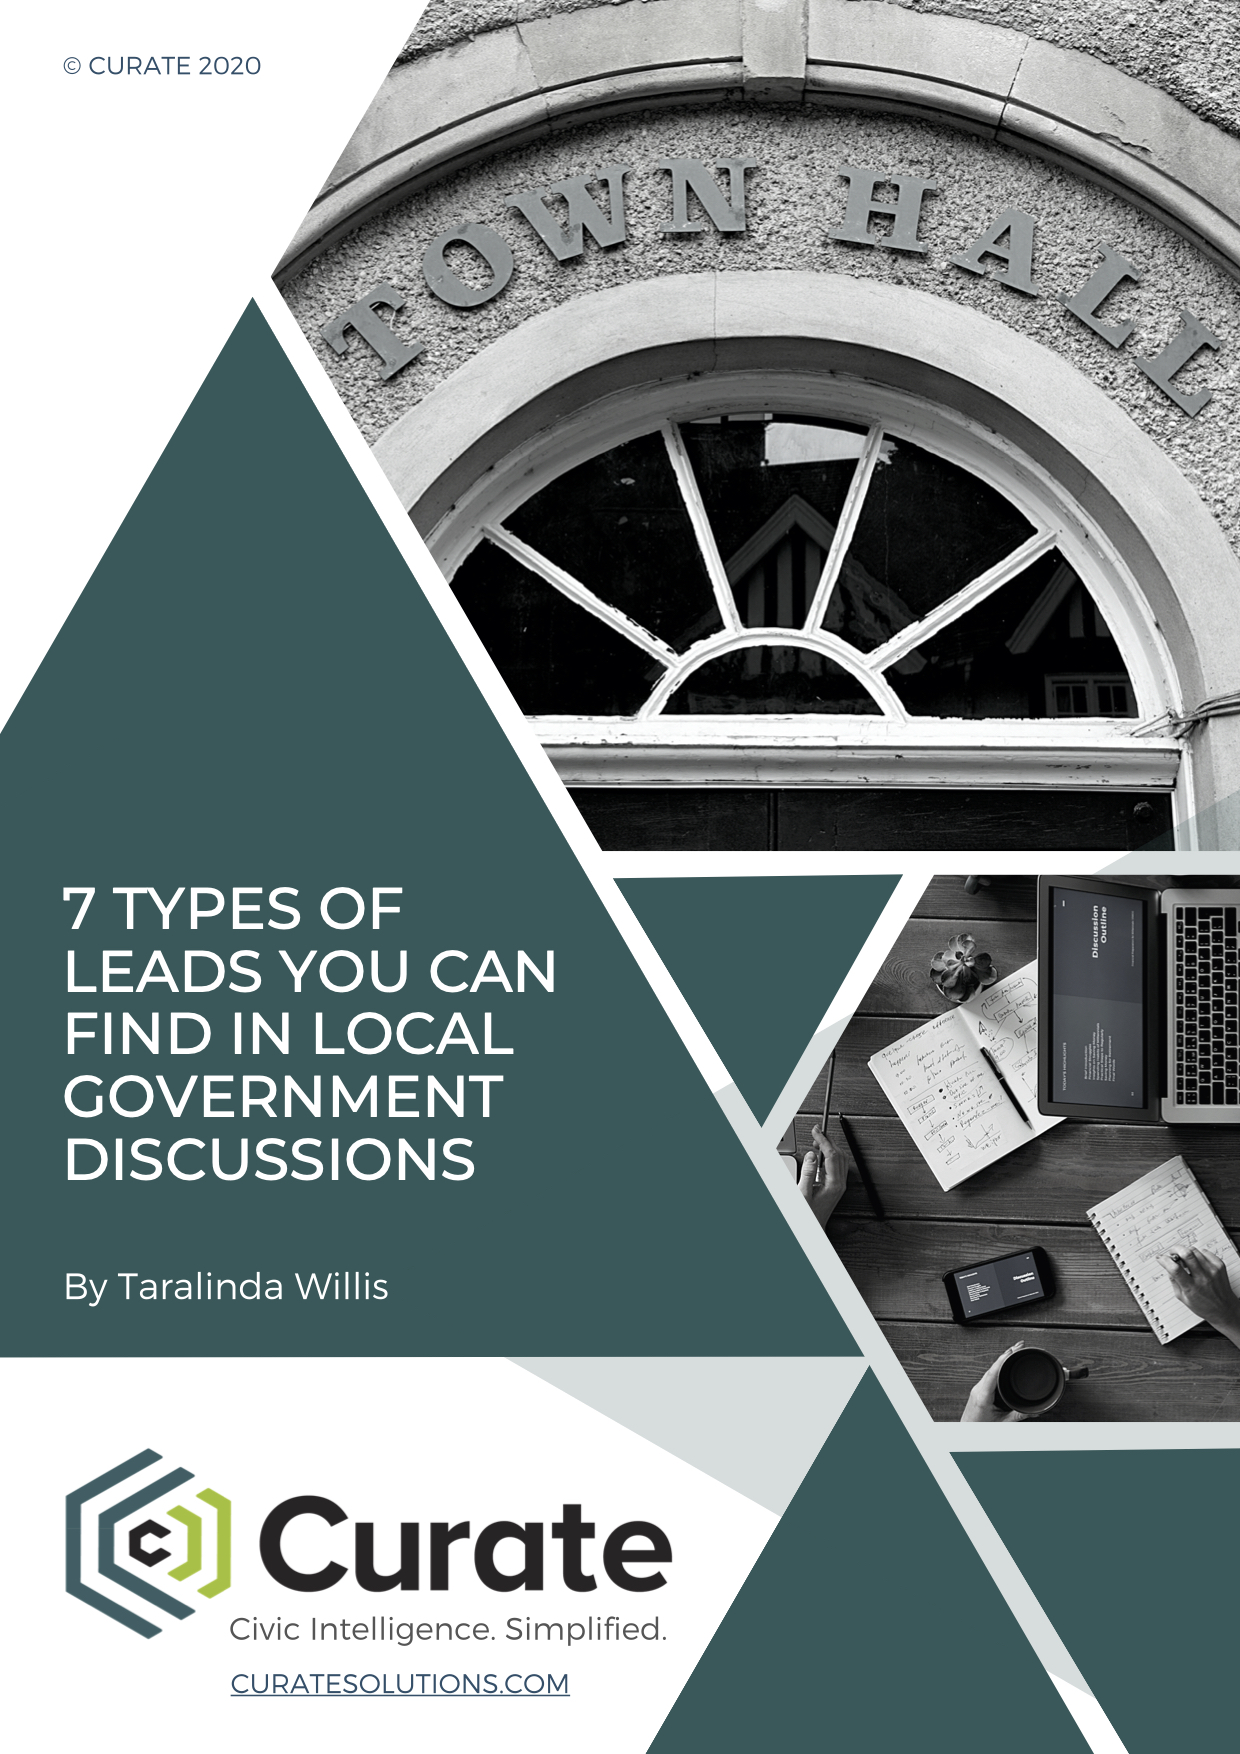 (cover) 7 Types of Leads you can Find in Local Government Discussions